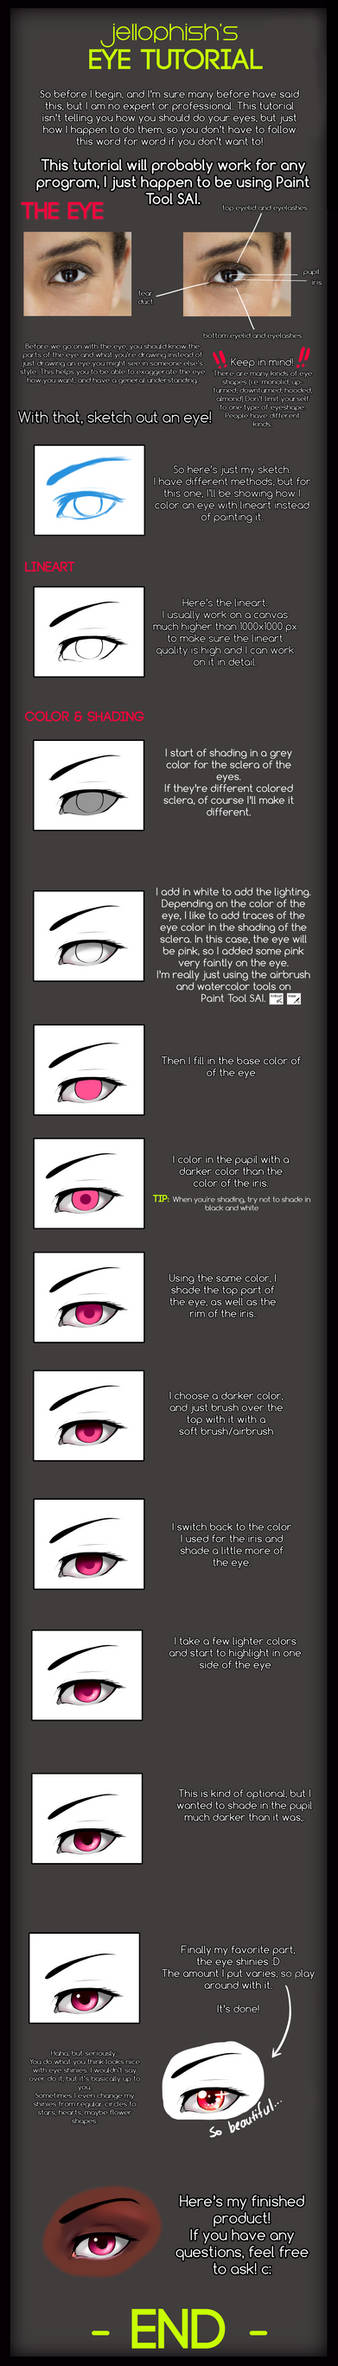 Jello's Eye Tutorial